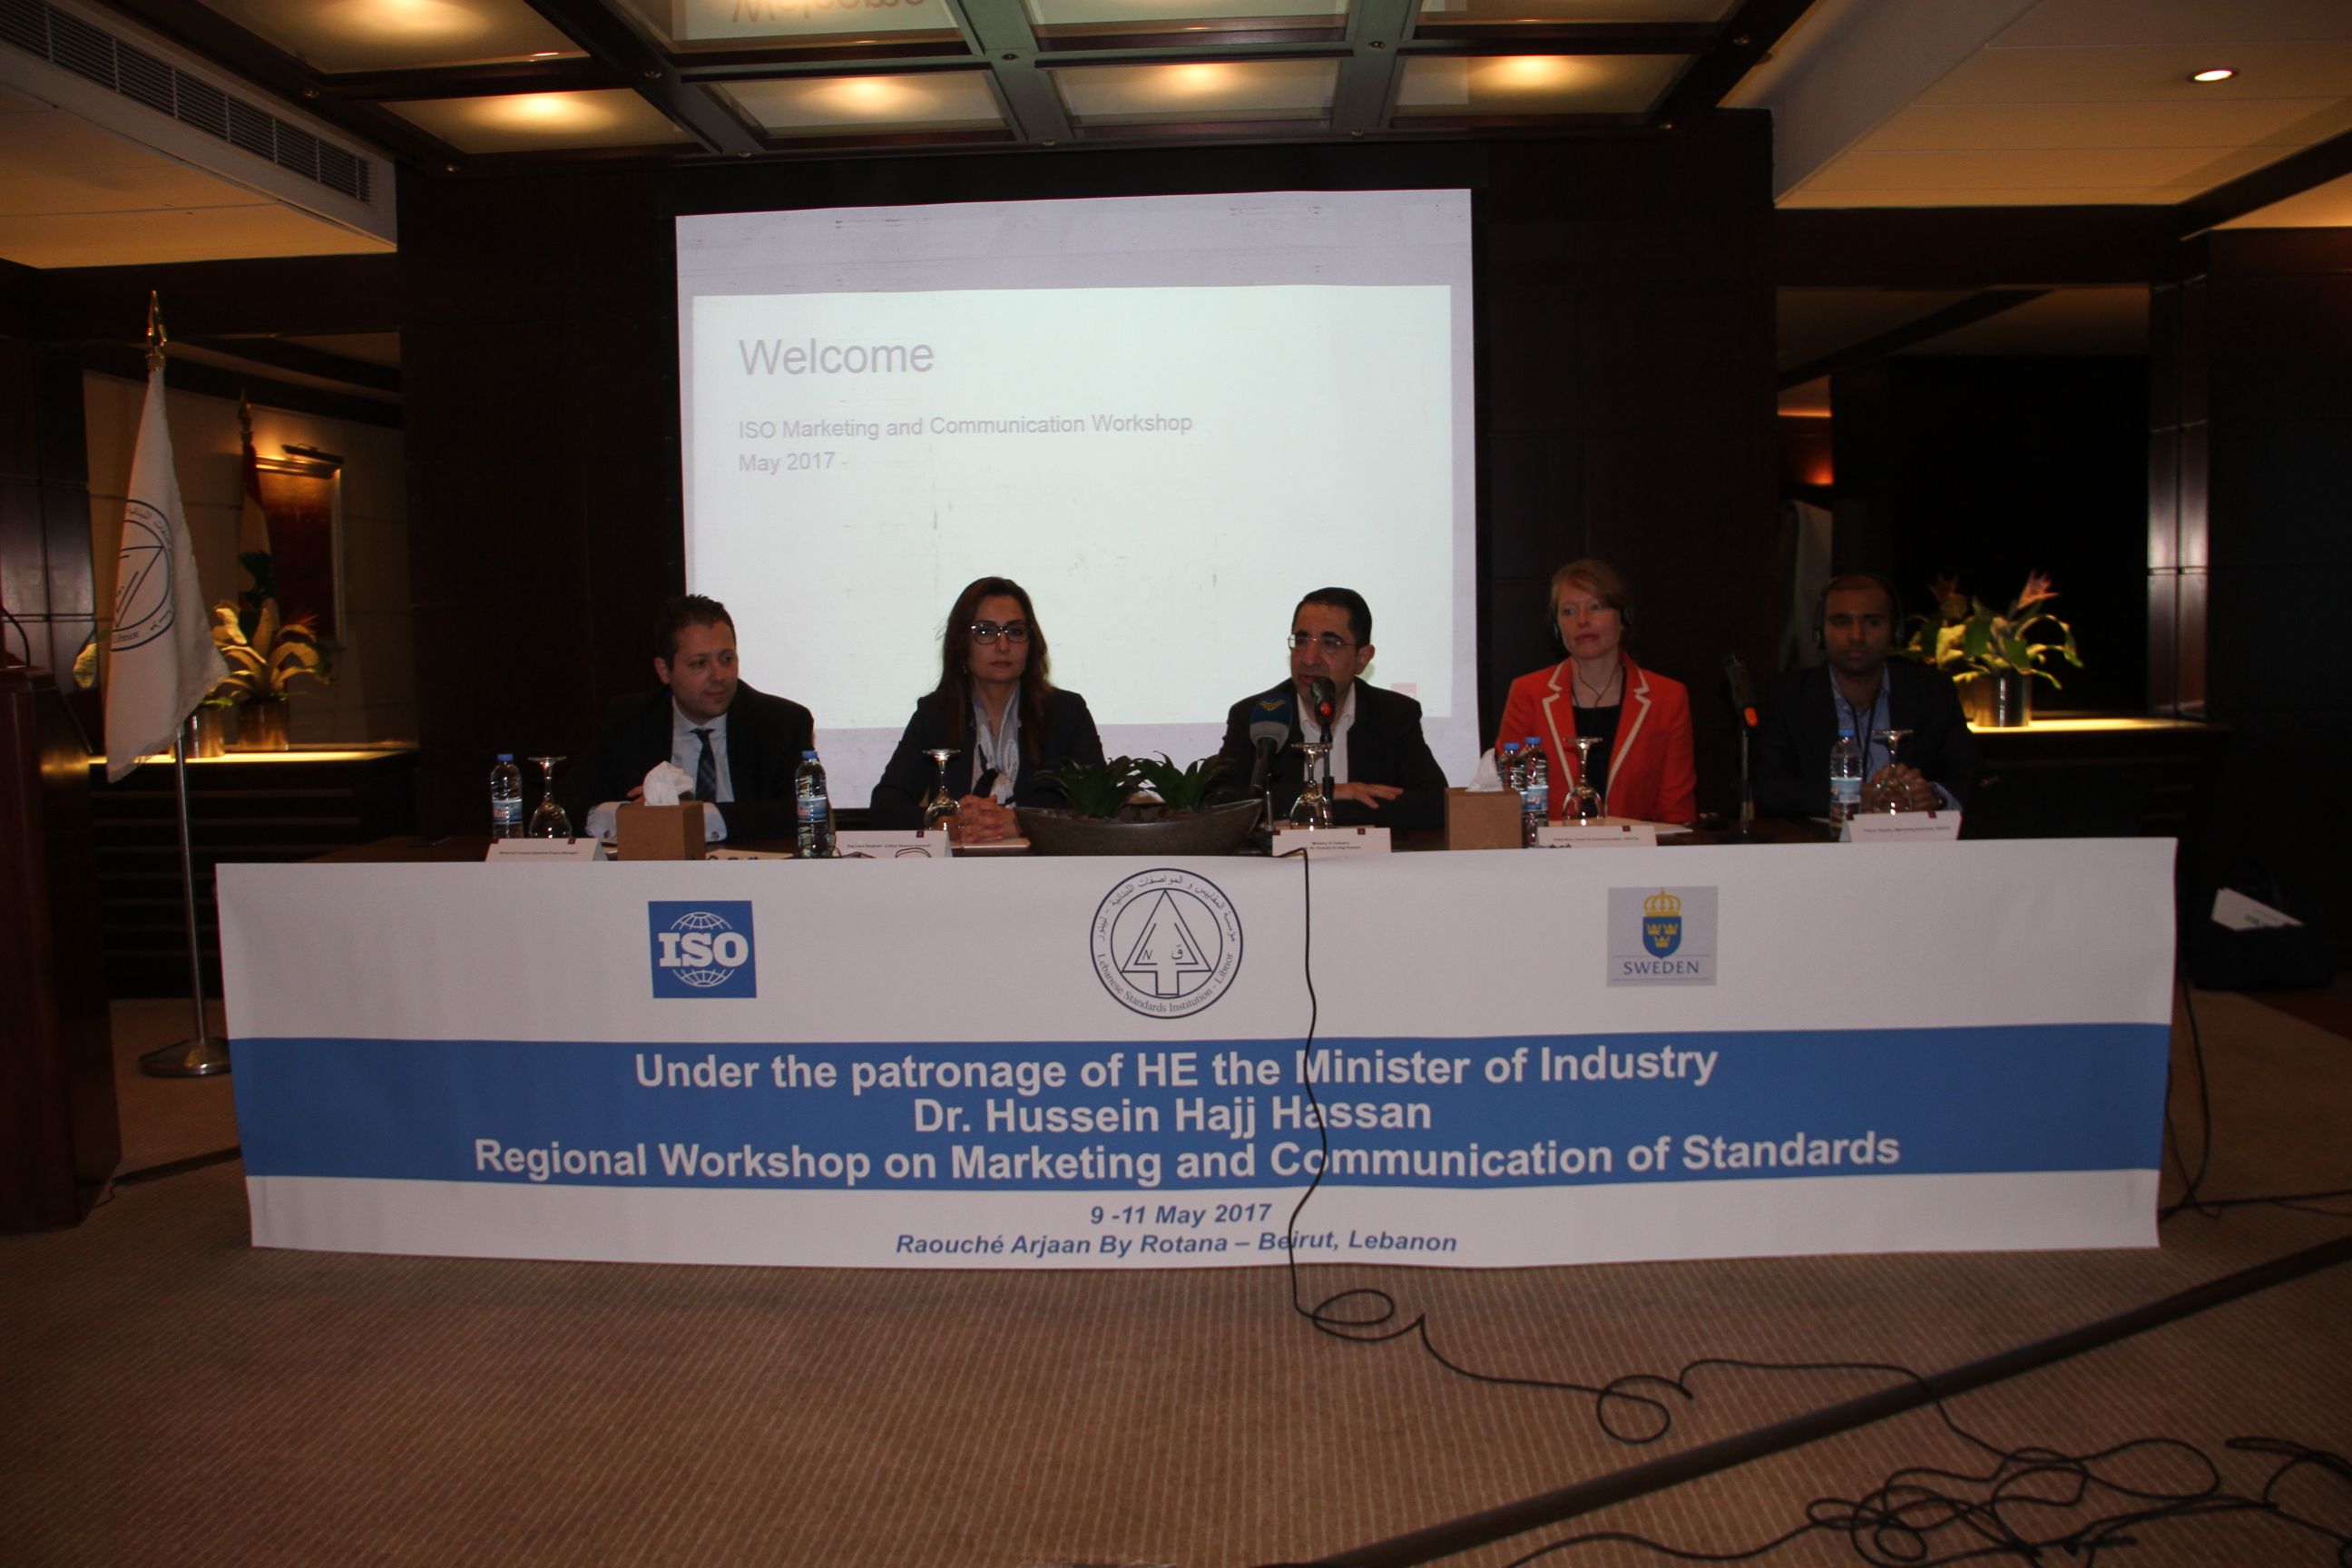 Regional workshop on marketting and communication of standards